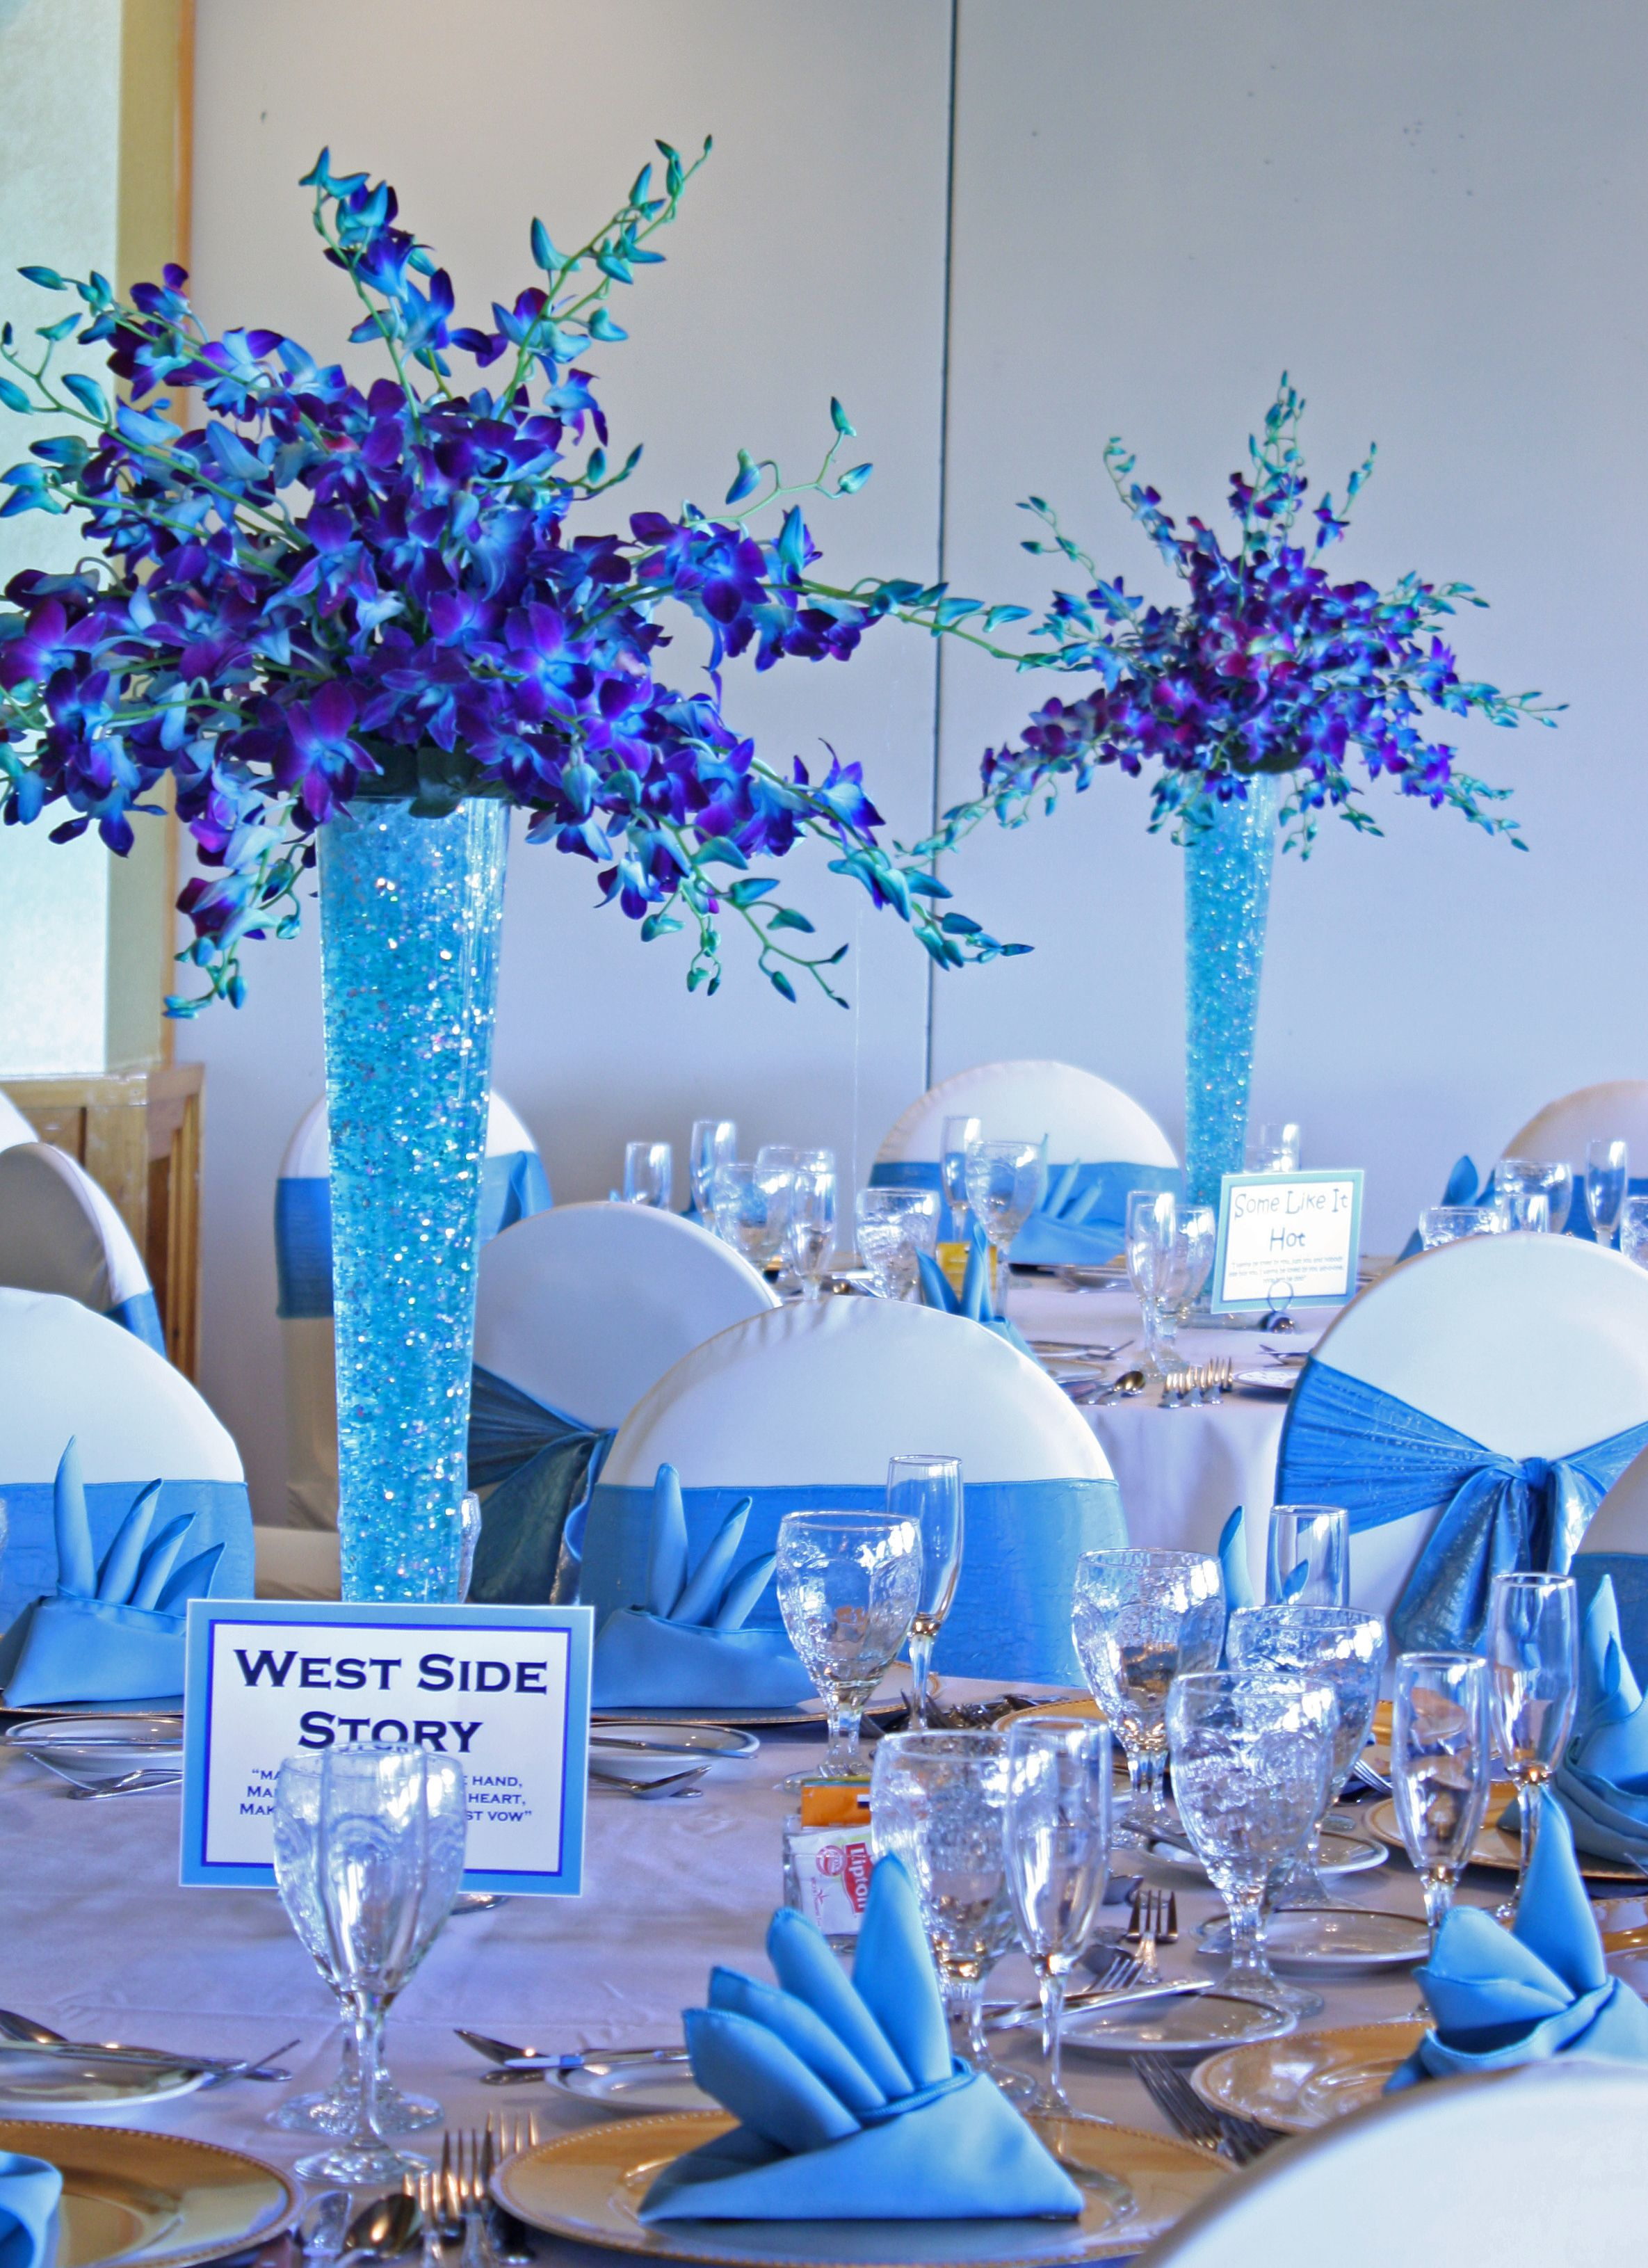 Turquoise blue purple perfect together as fun as it is turquoise blue purple perfect together as fun as it is beautiful crossroads florist mahwah nj wedding reception flowers pinterest florists reviewsmspy